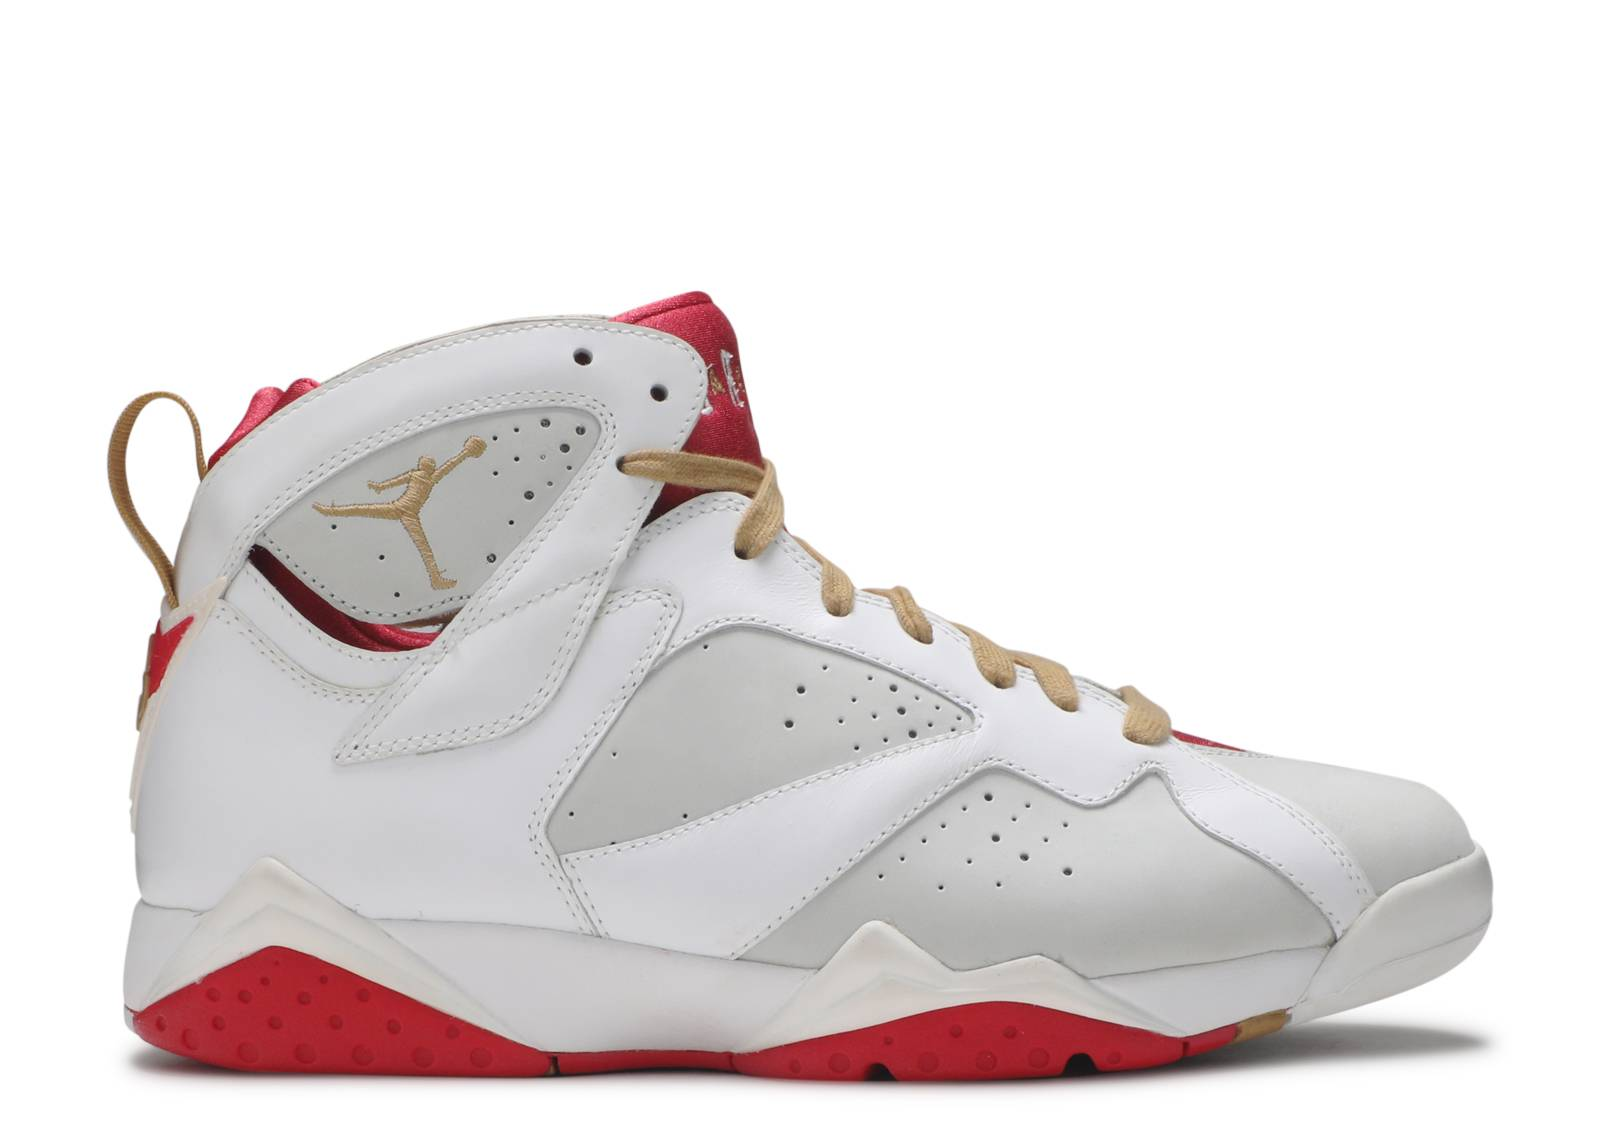 air jordan 7 retro yotr \u0026quot;year of the rabbit\u0026quot;